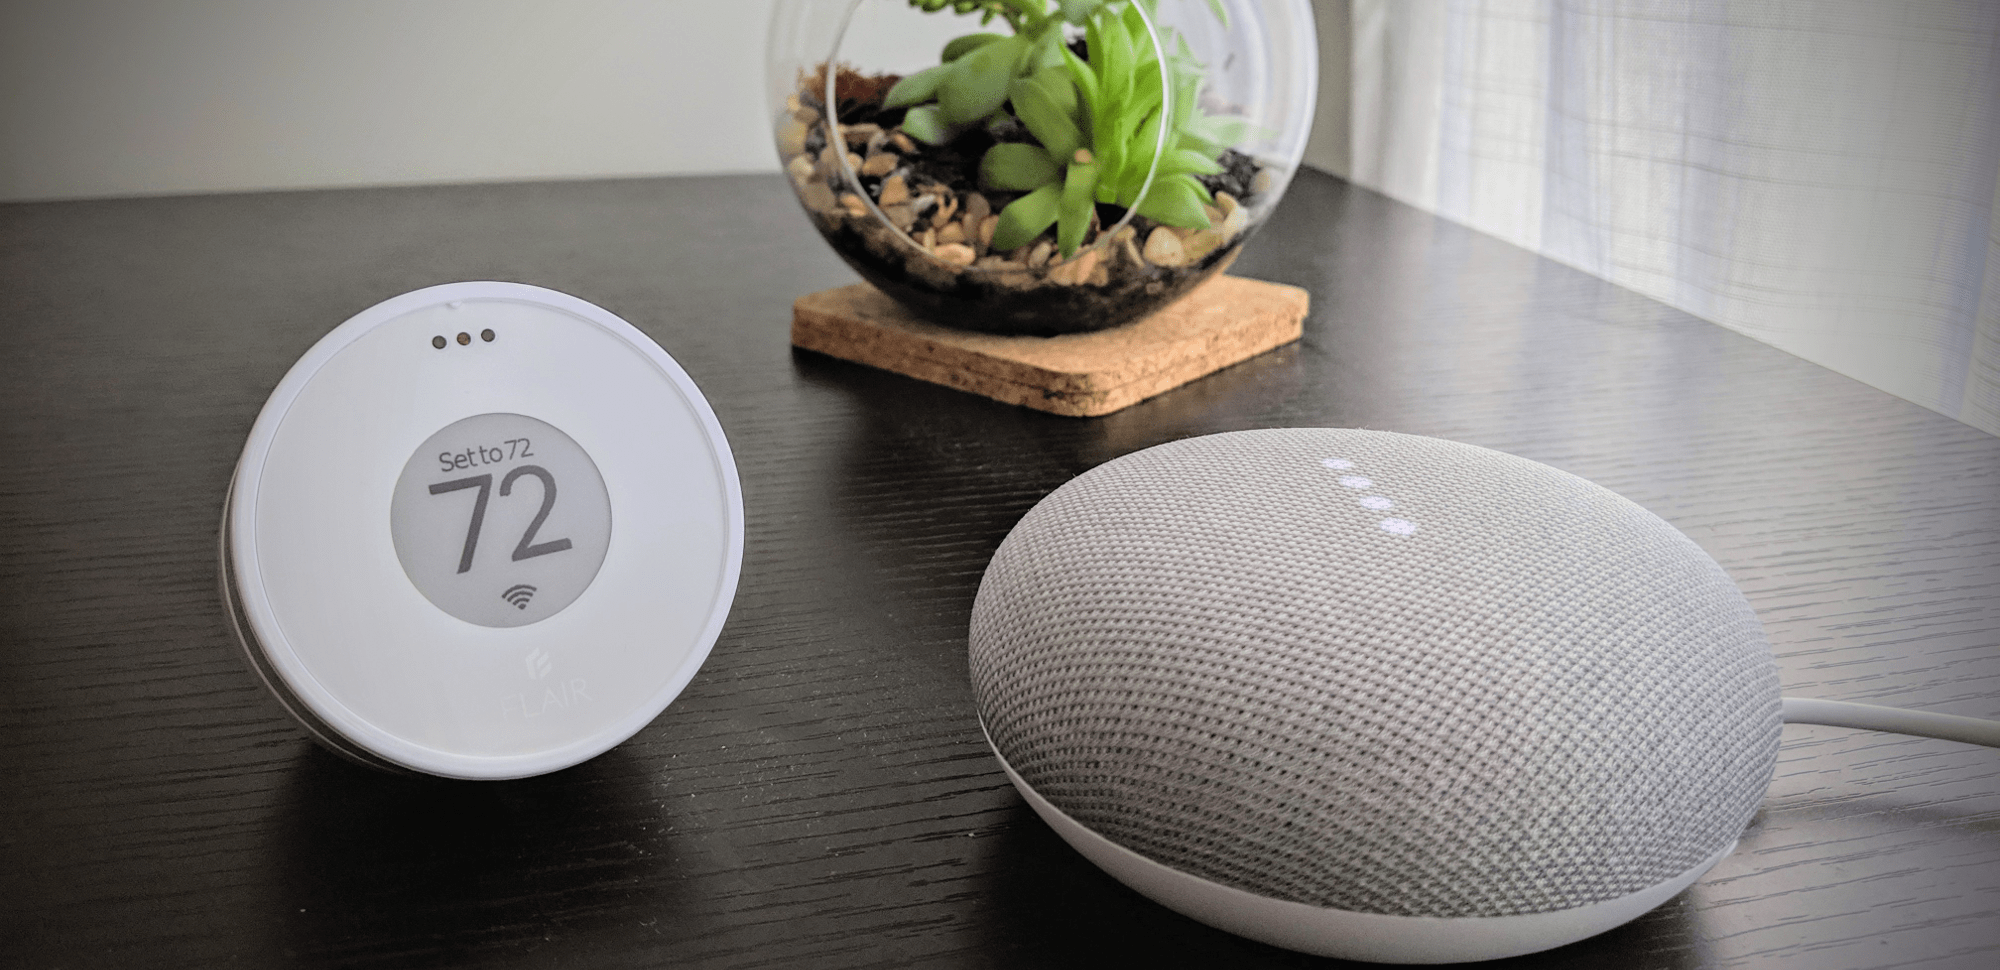 The Perfect Temperature In Every Room with your Google Home or Google Assistant-enabled device